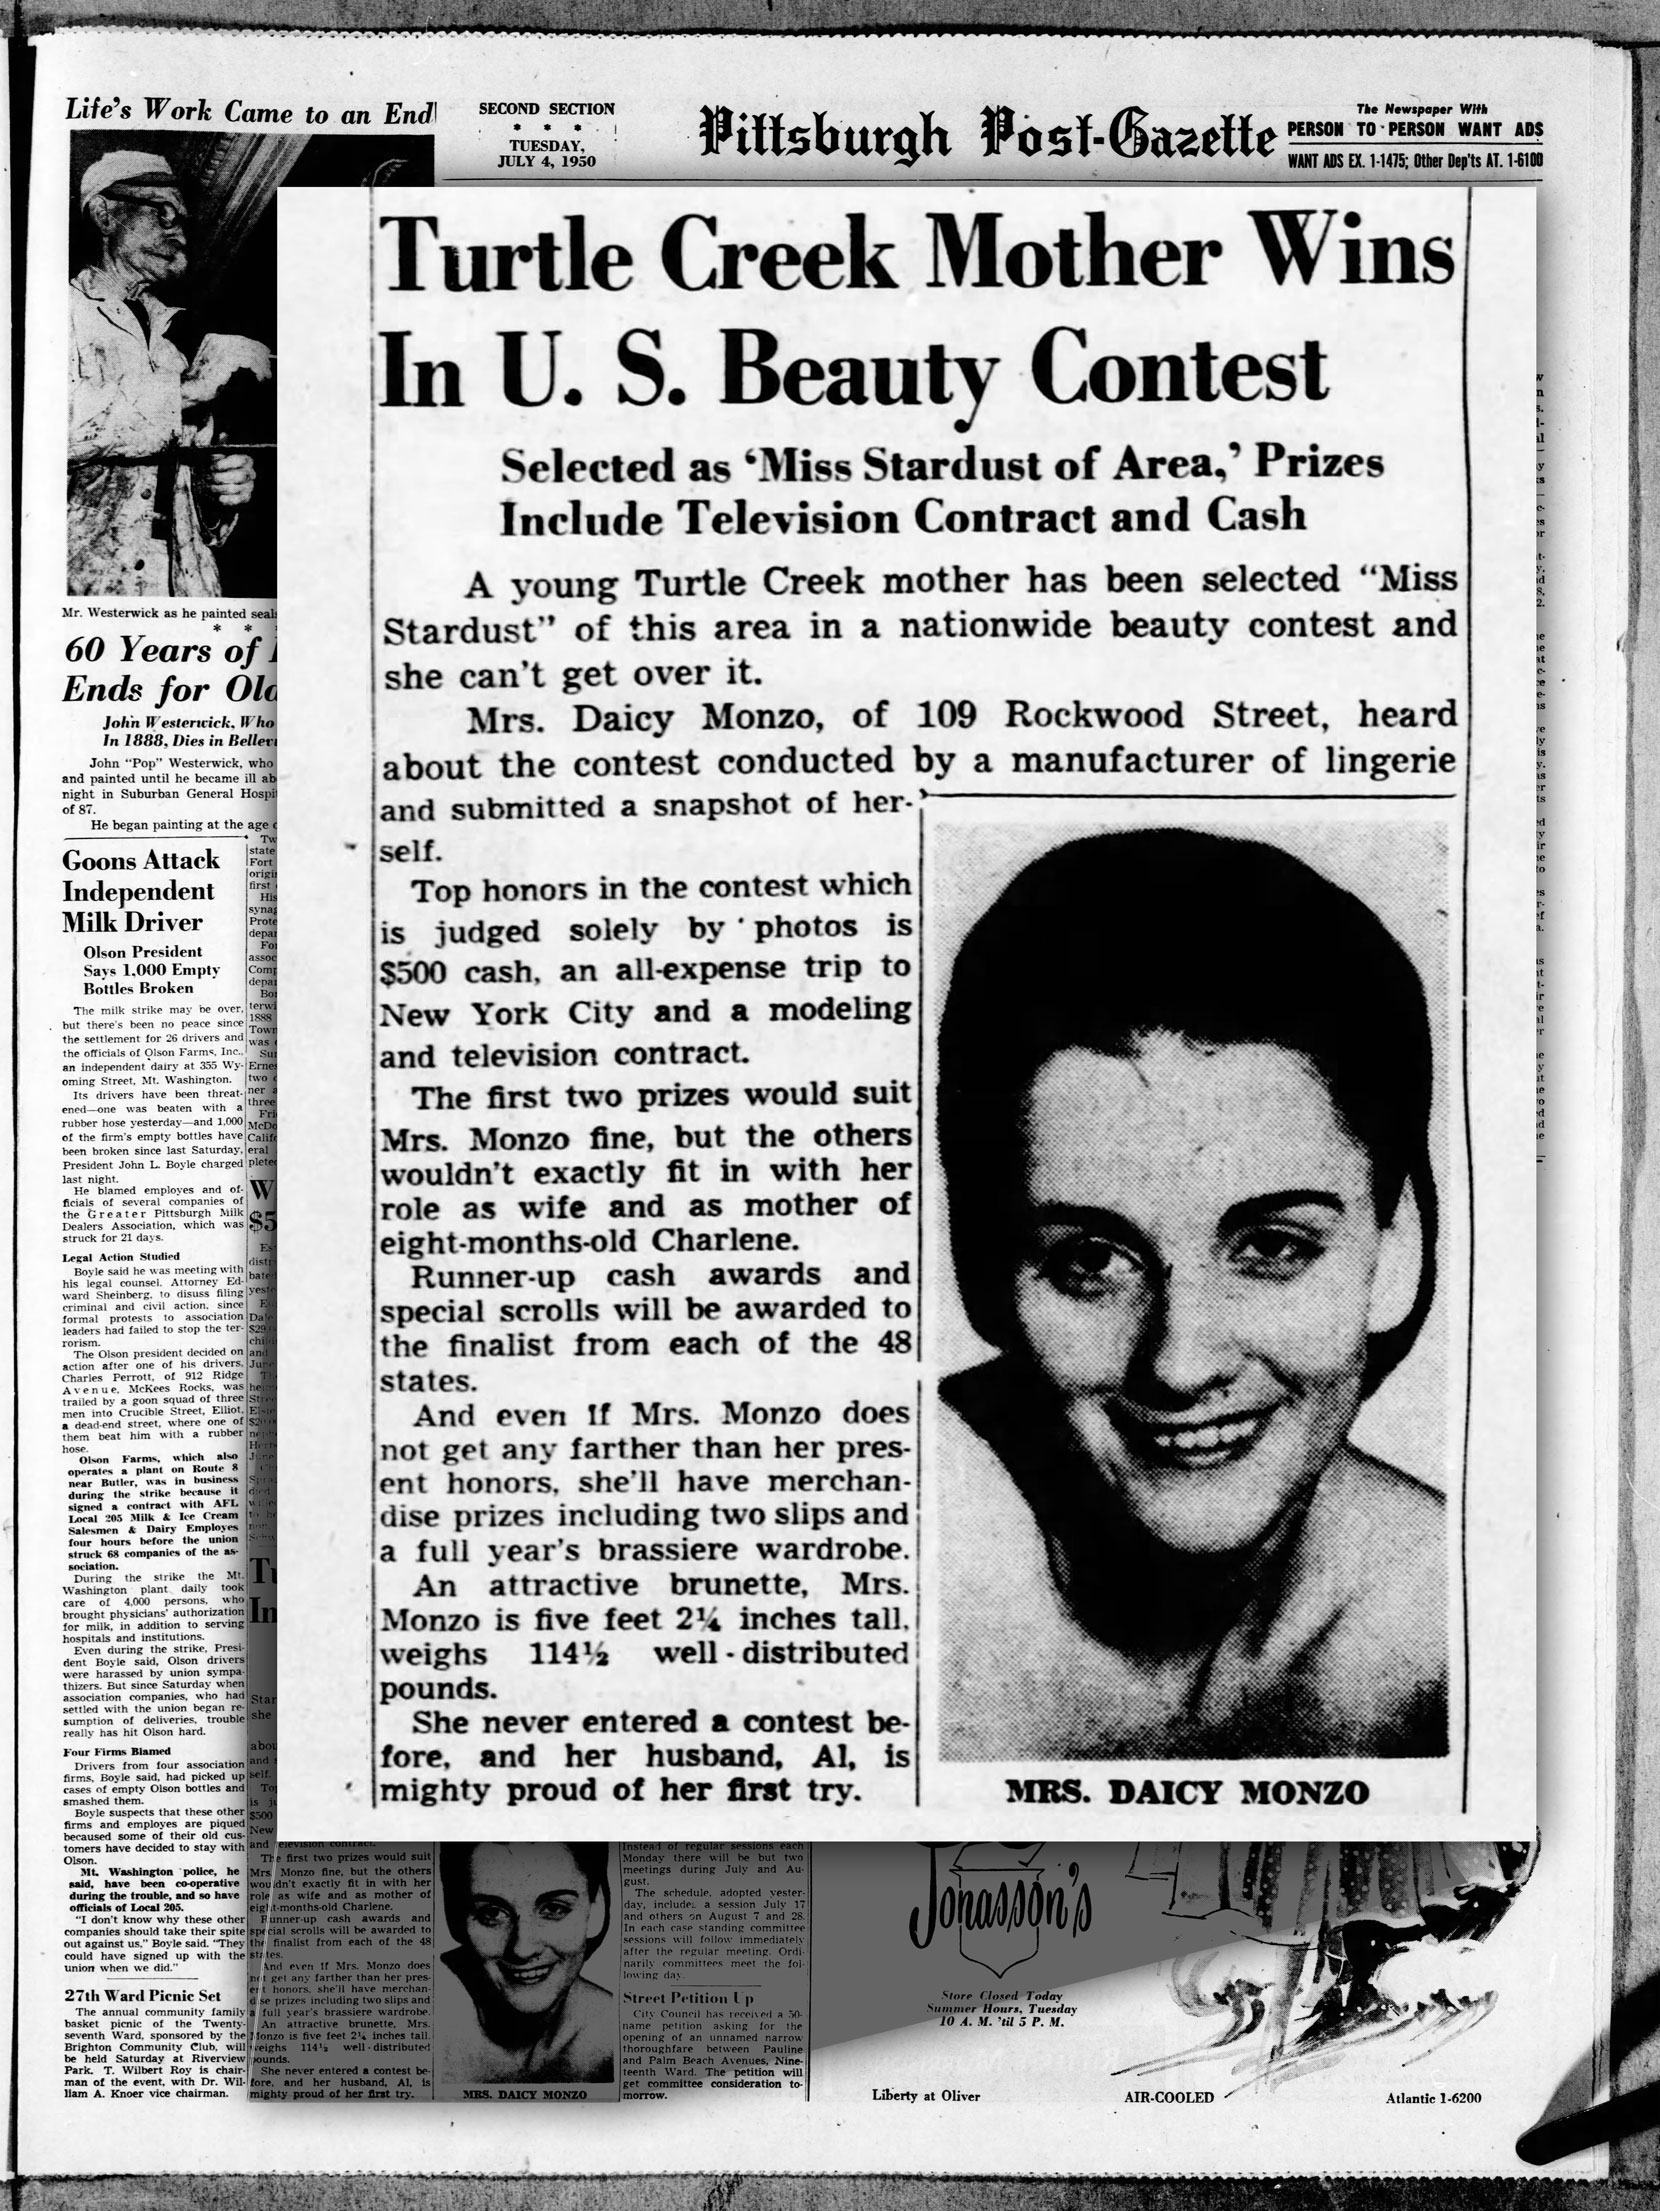 Daisy Monzo wins US Beauty Contest article